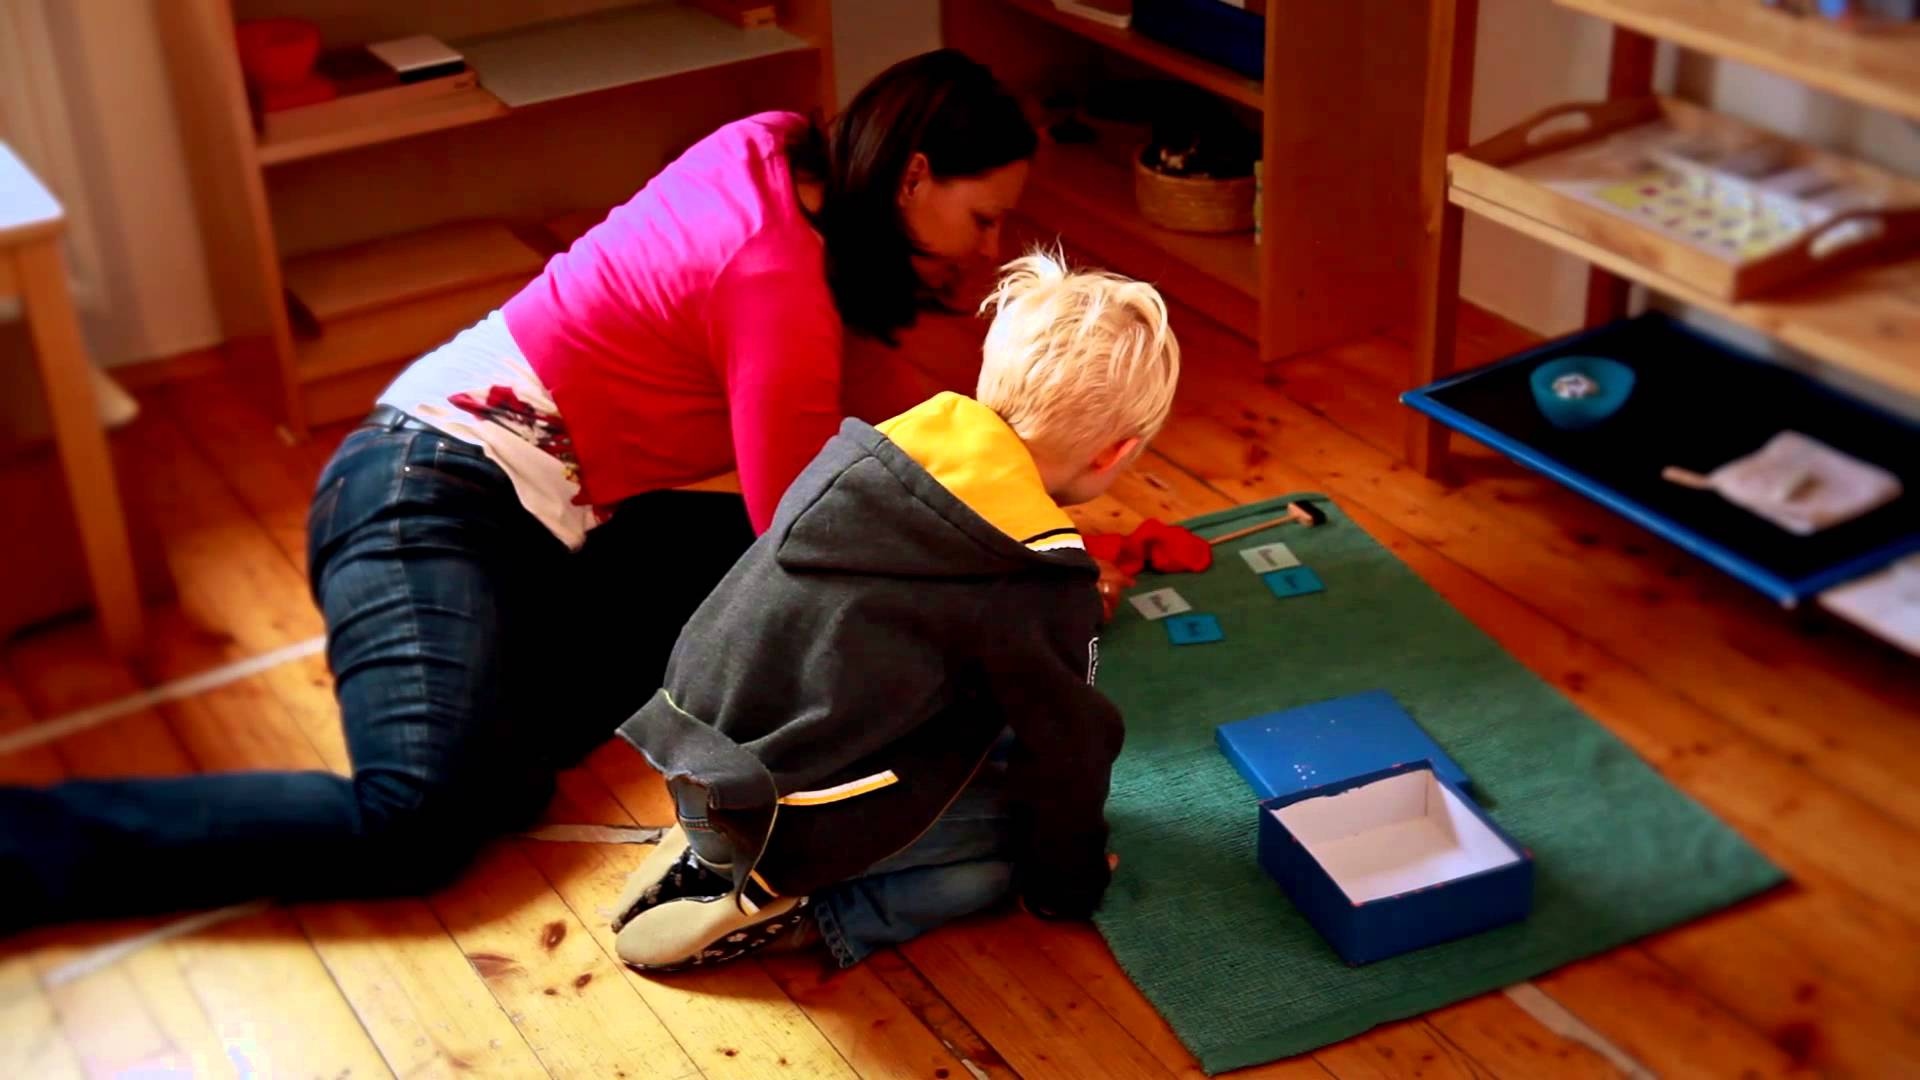 A typical Montessori classroom.